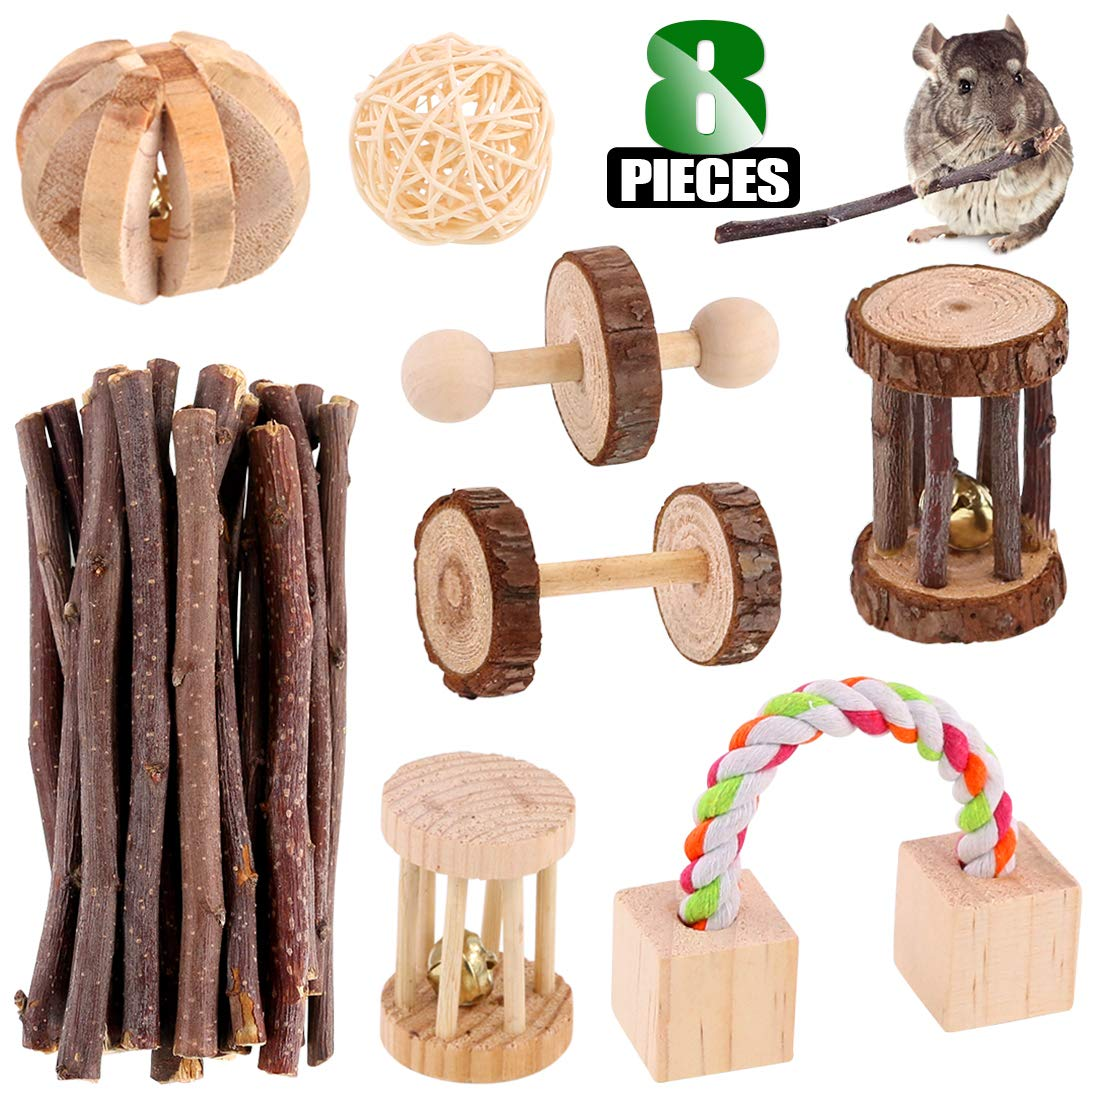 Keadic Small Pets Hamster Chew Toys Set Natural Pine, Dumbells, Exercise Bell Roller, Fun Pet Balls, Molar Apple Sticks Wooden for Chinchilla Hamster Guinea Pig Birds Bunny Rabbits Gerbils (Pack of 8) by Keadic